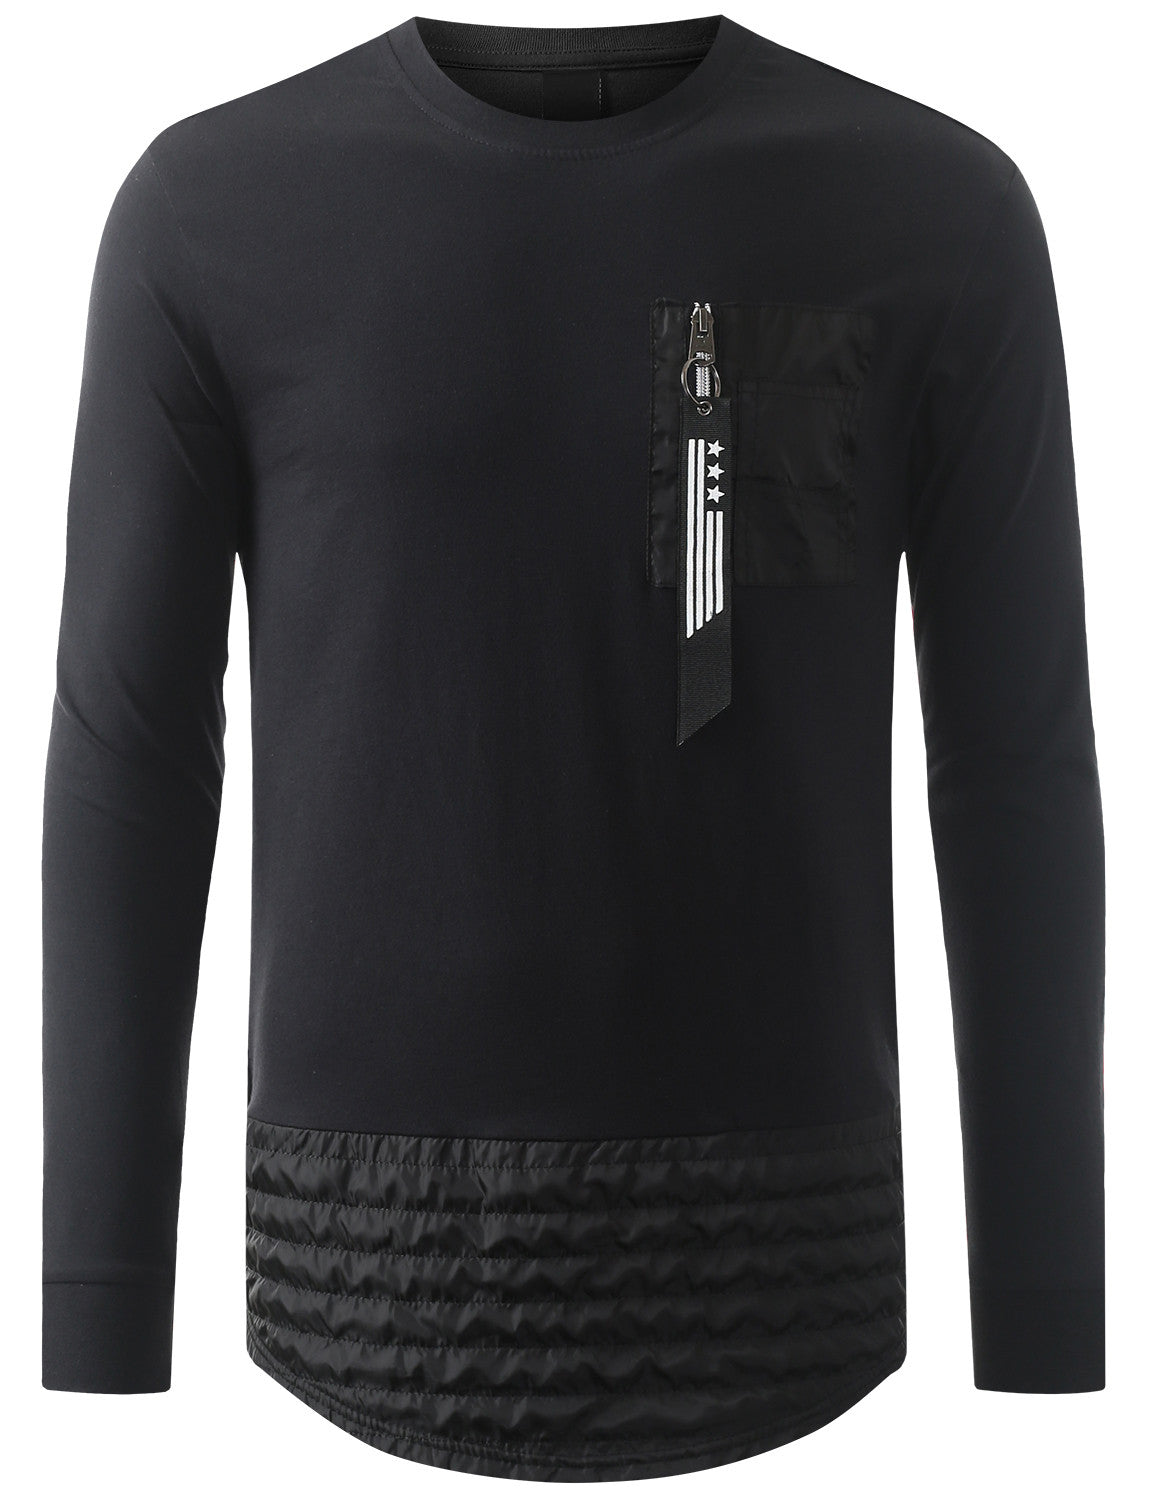 BLACK Nylon Trim Thermal Longline Sweatshirt - URBANCREWS